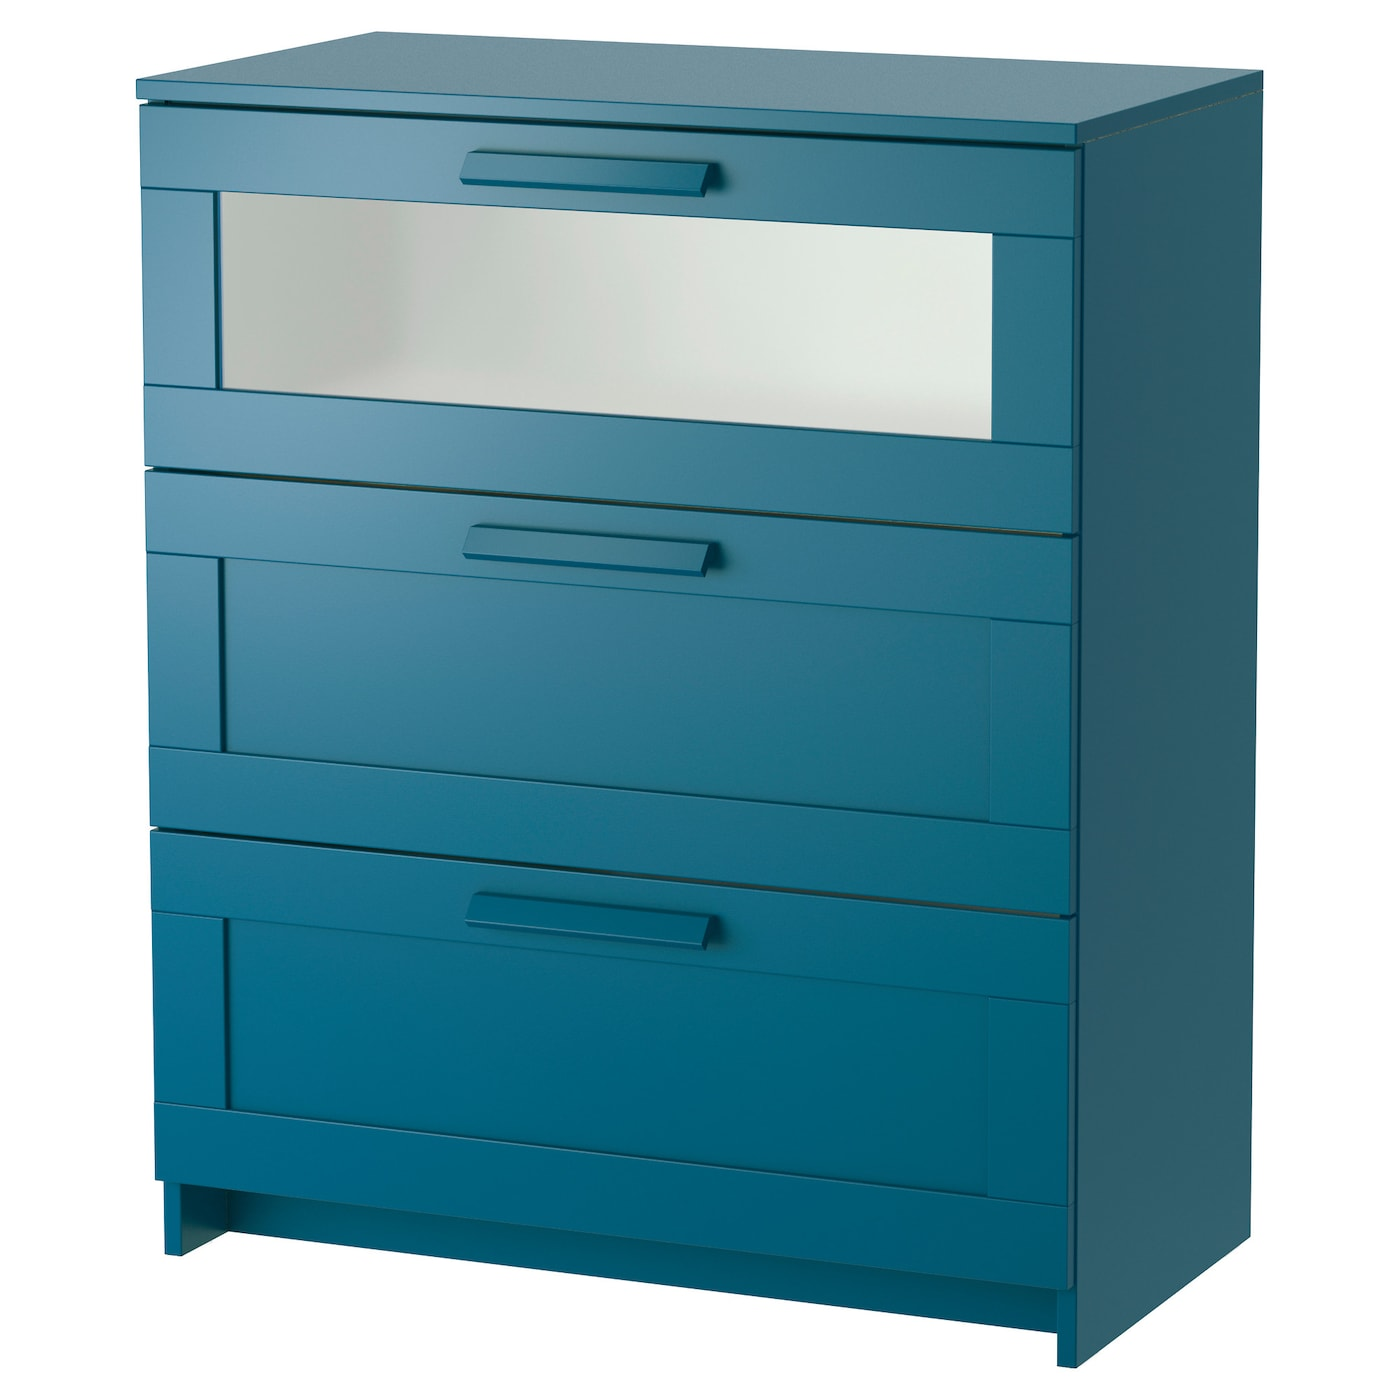 Brimnes chest of 3 drawers dark green blue frosted glass for Commode brimnes ikea 3 tiroirs